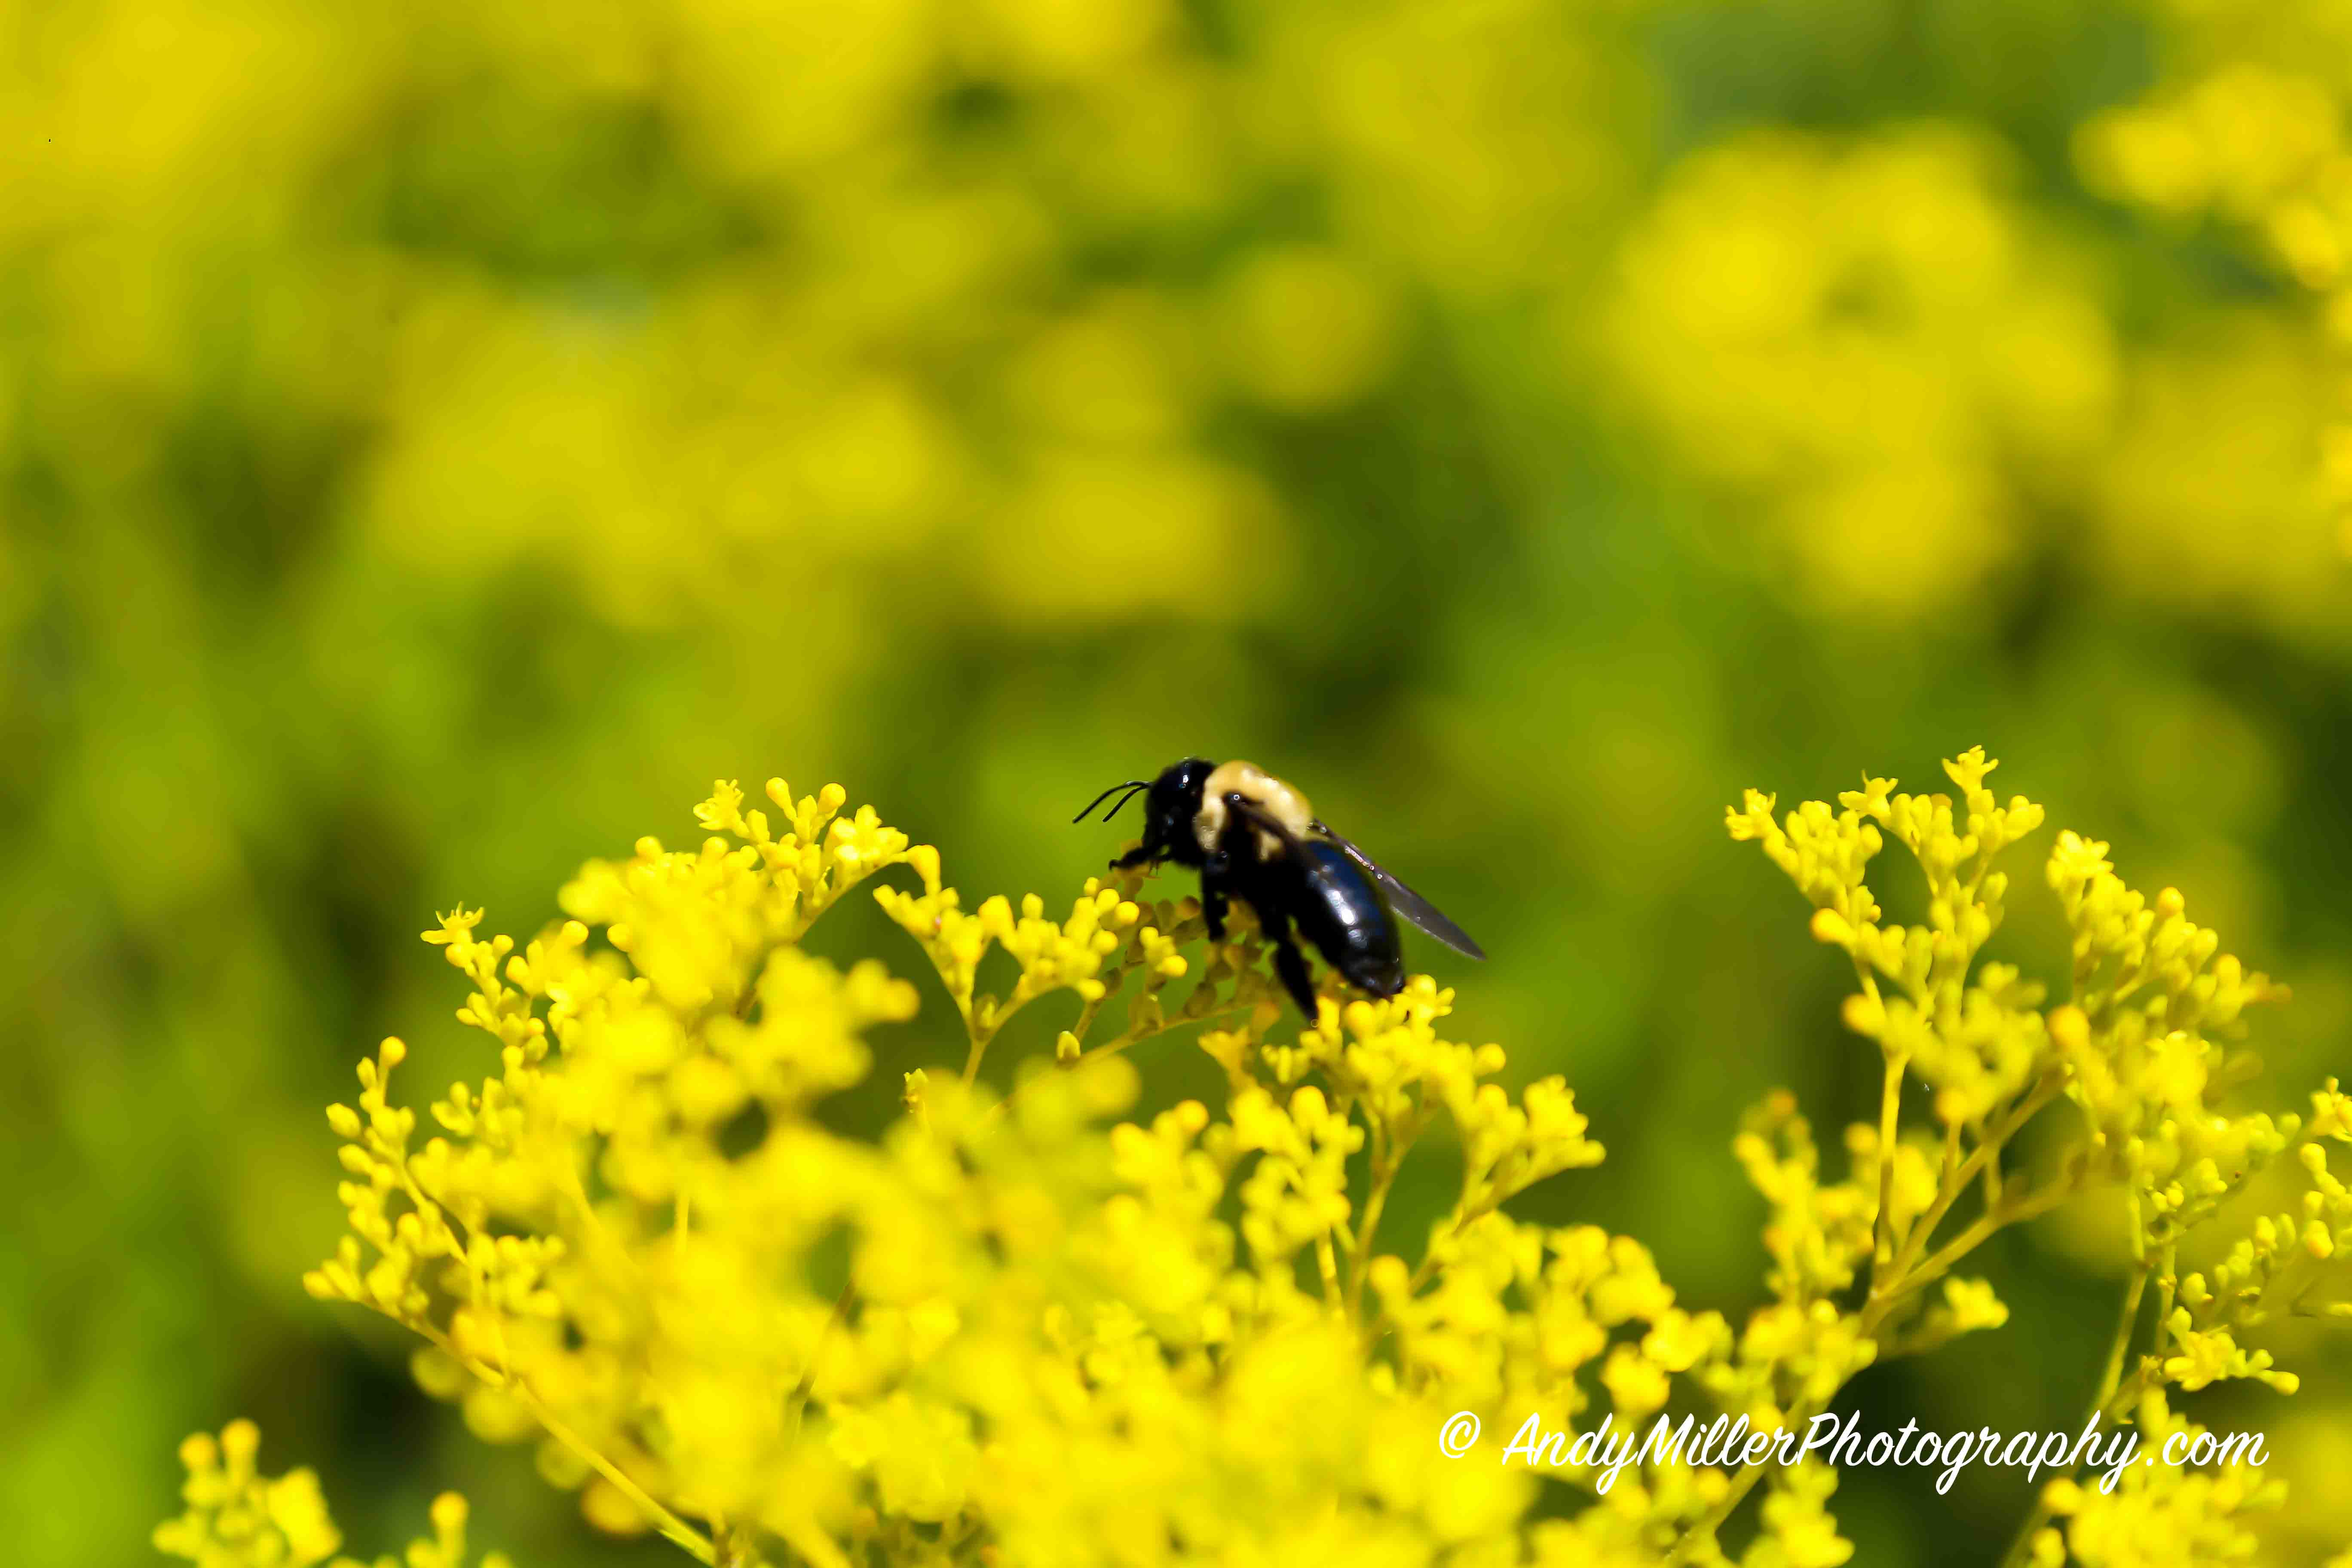 Bumblebee on sea of yellow flowers